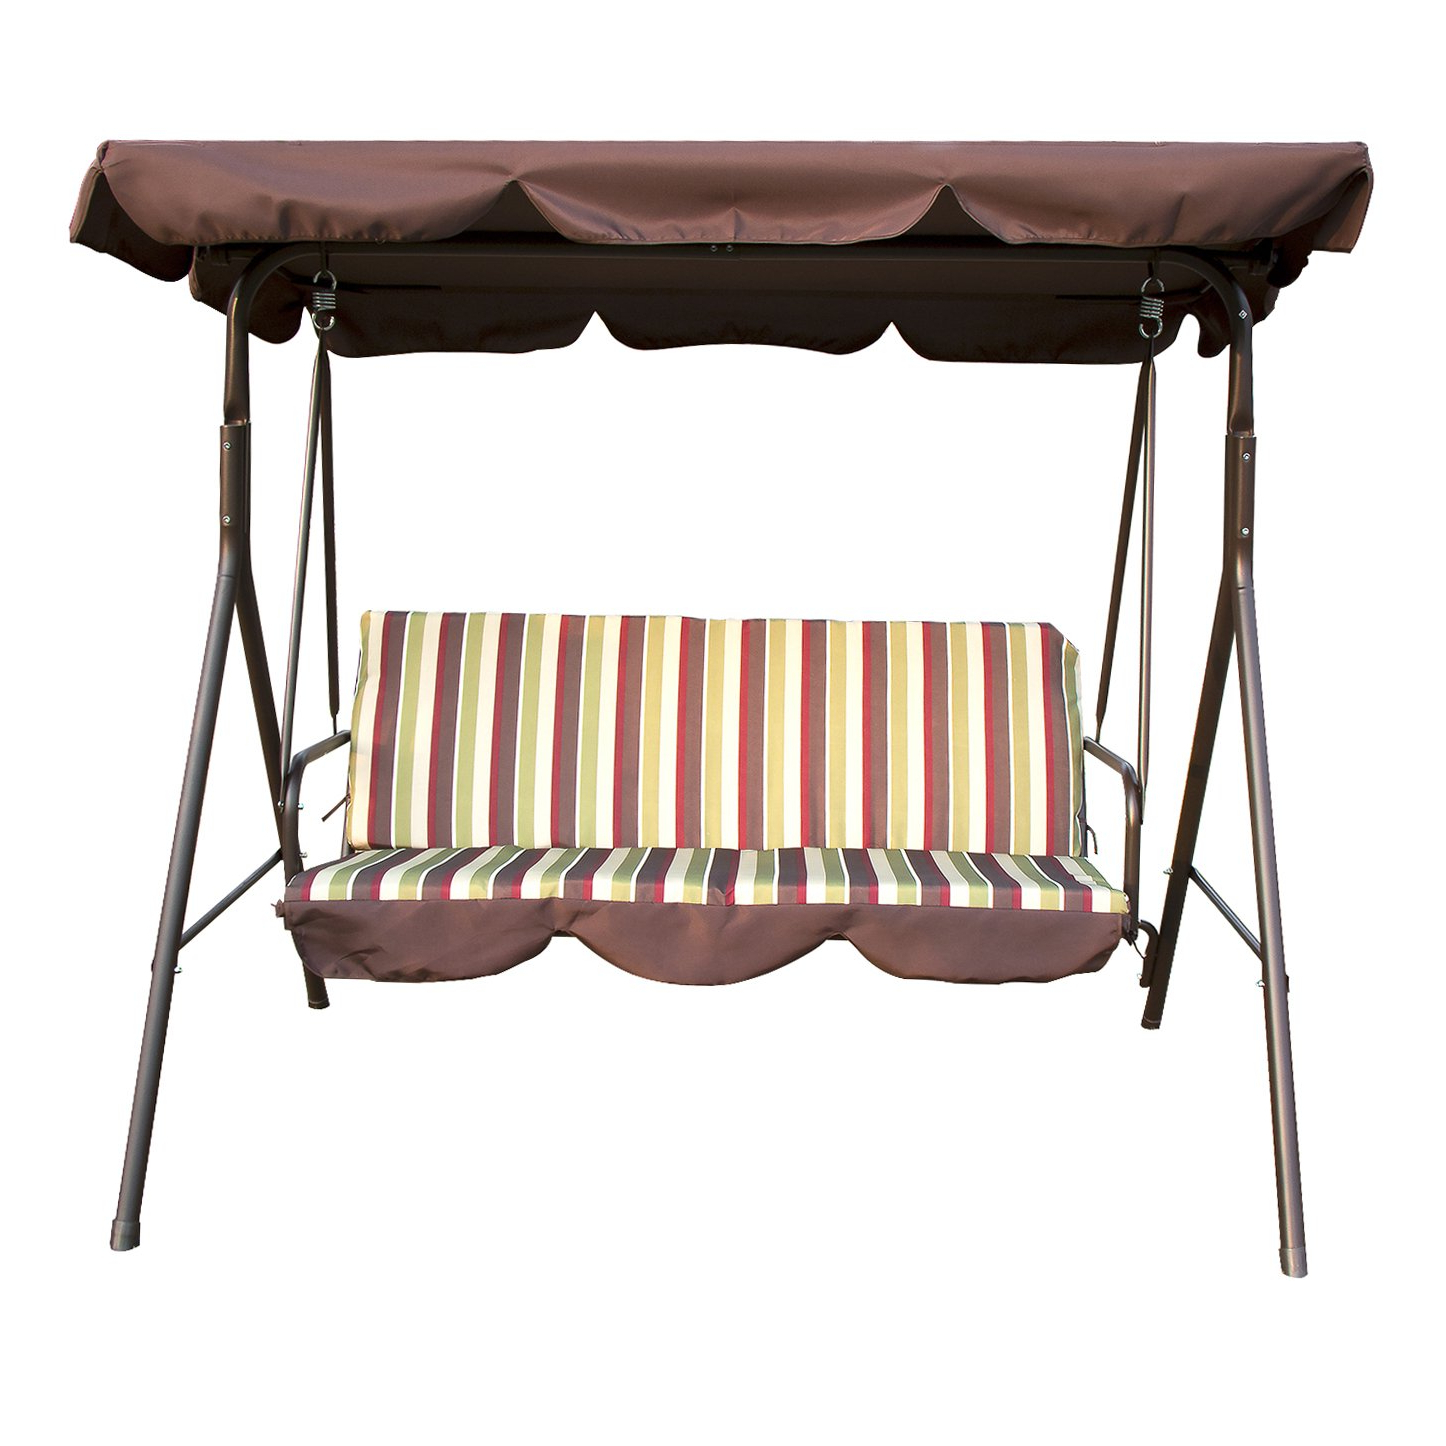 Popular Outdoor Swing Glider Chairs With Powder Coated Steel Frame Regarding Top 10 Best Porch Swings With Stands In 2019 – Brain And Mouth (Gallery 18 of 25)